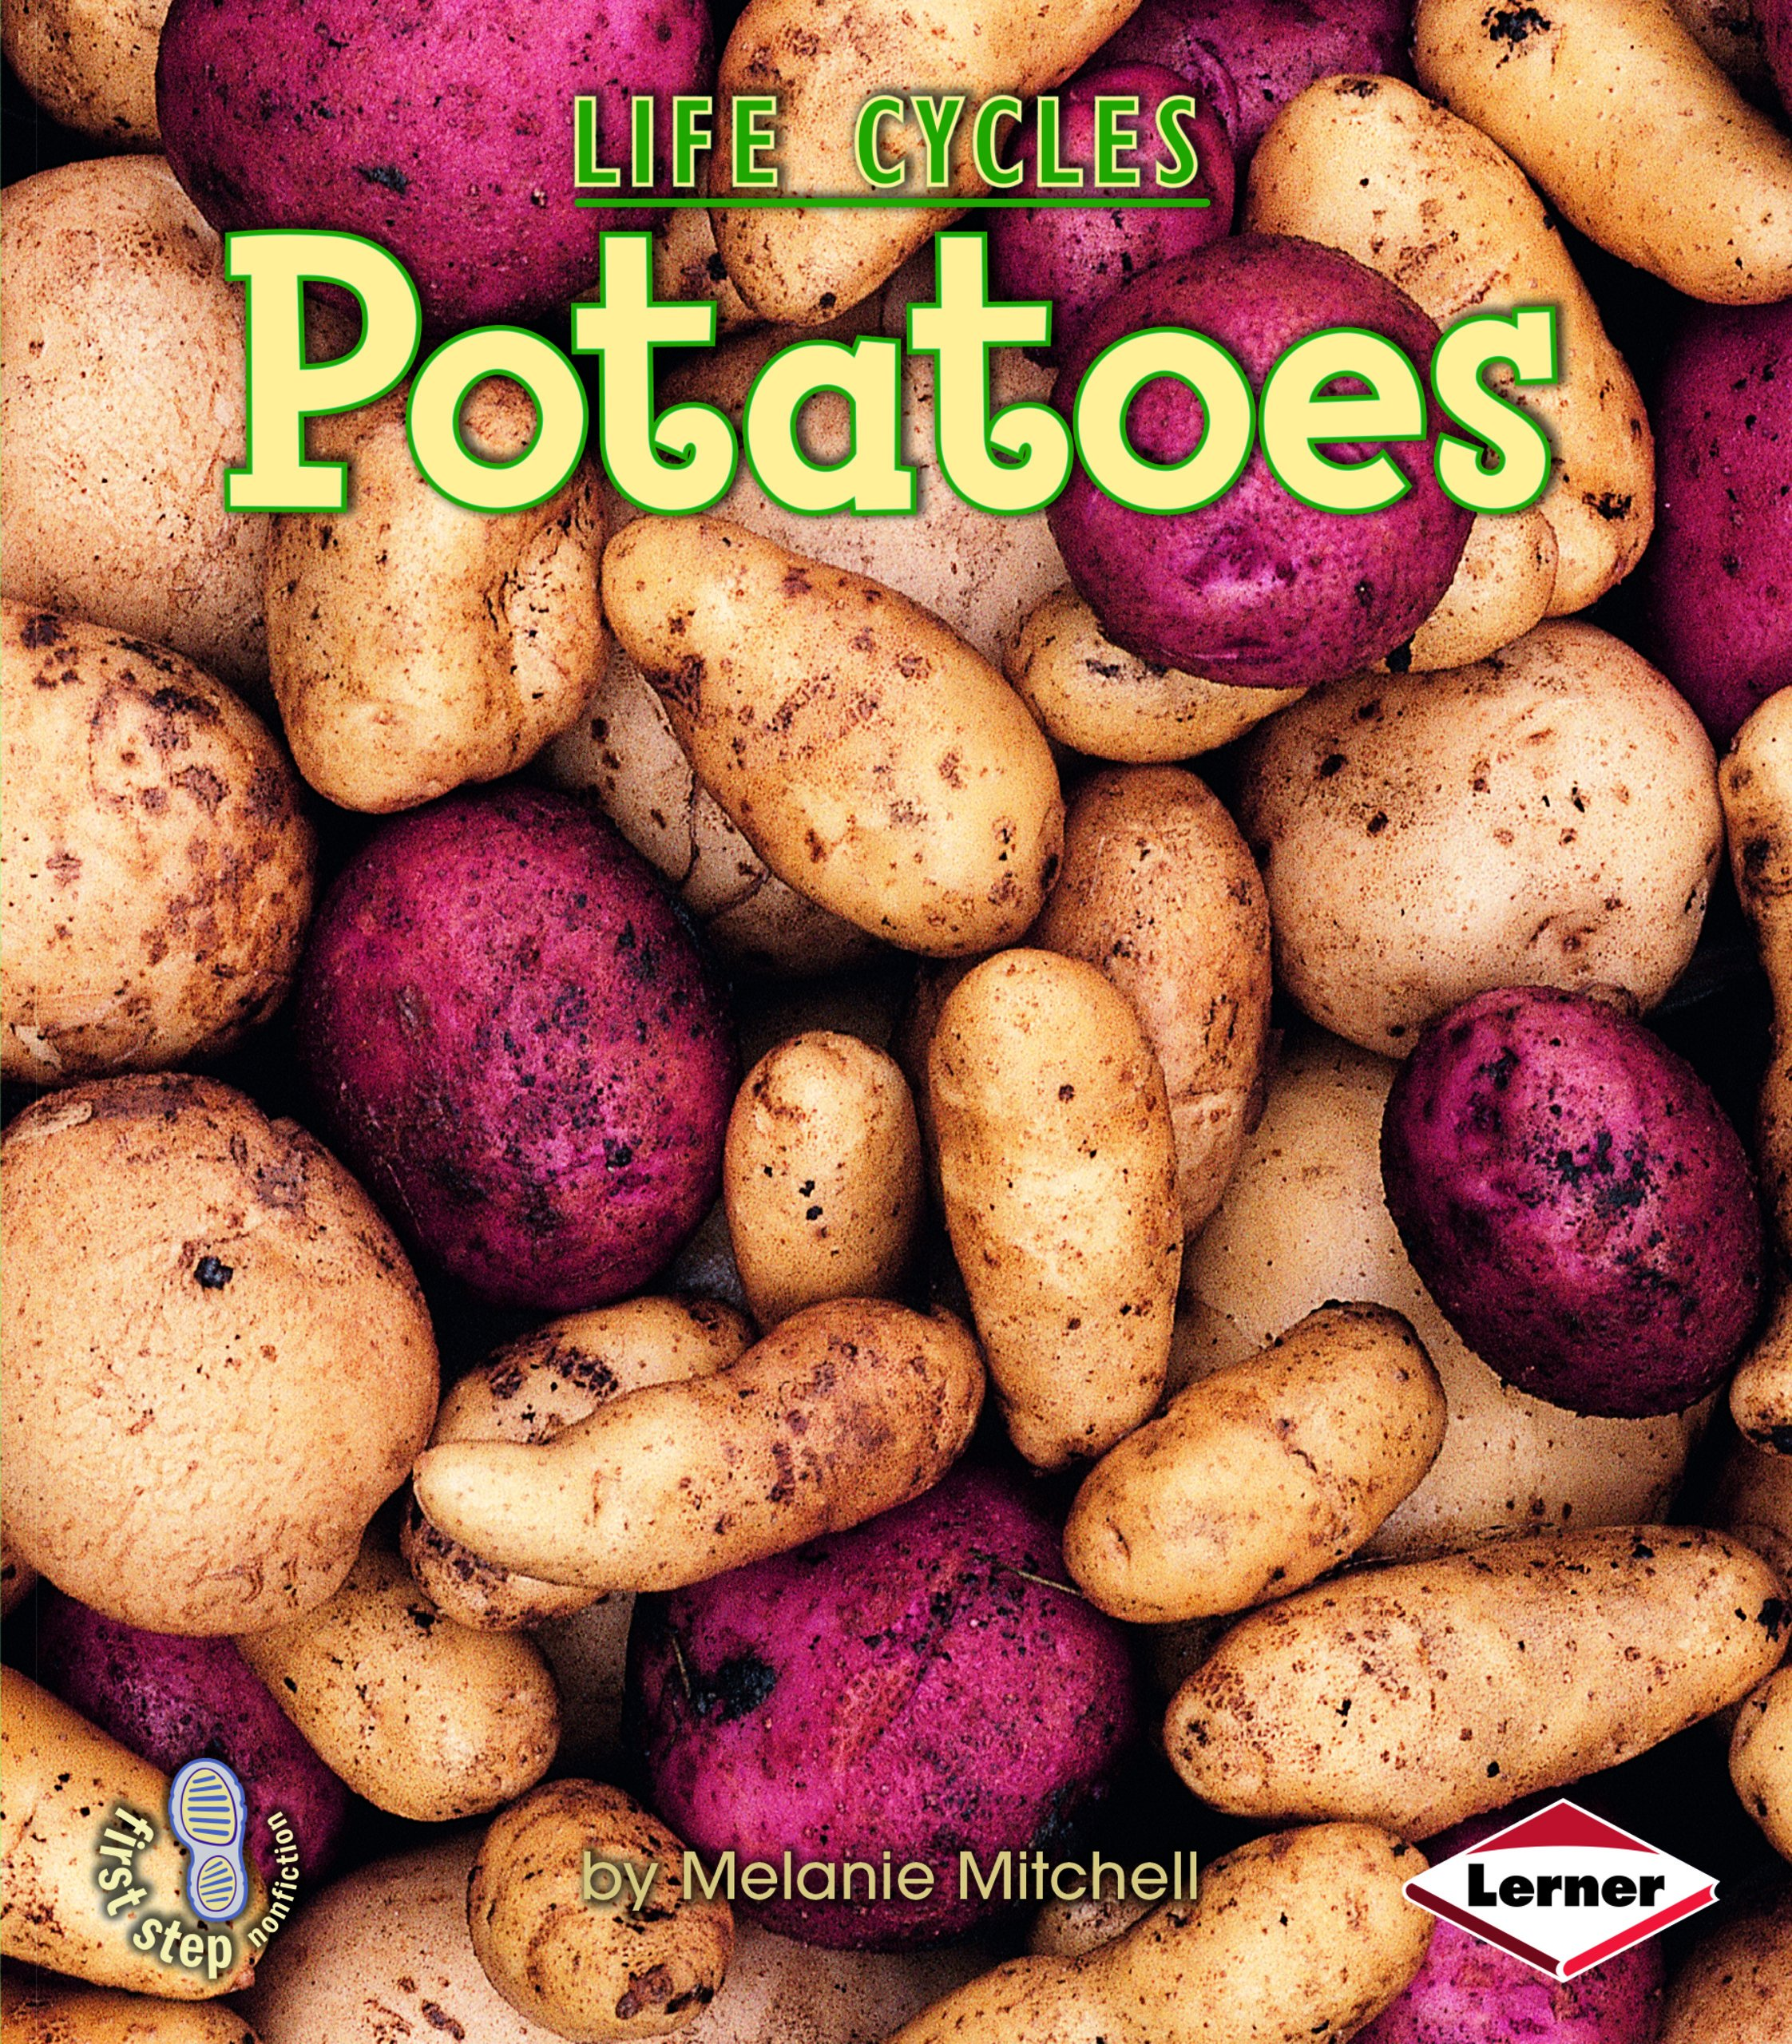 Potatoes (First Step Nonfiction) by Lernerclassroom (Image #1)